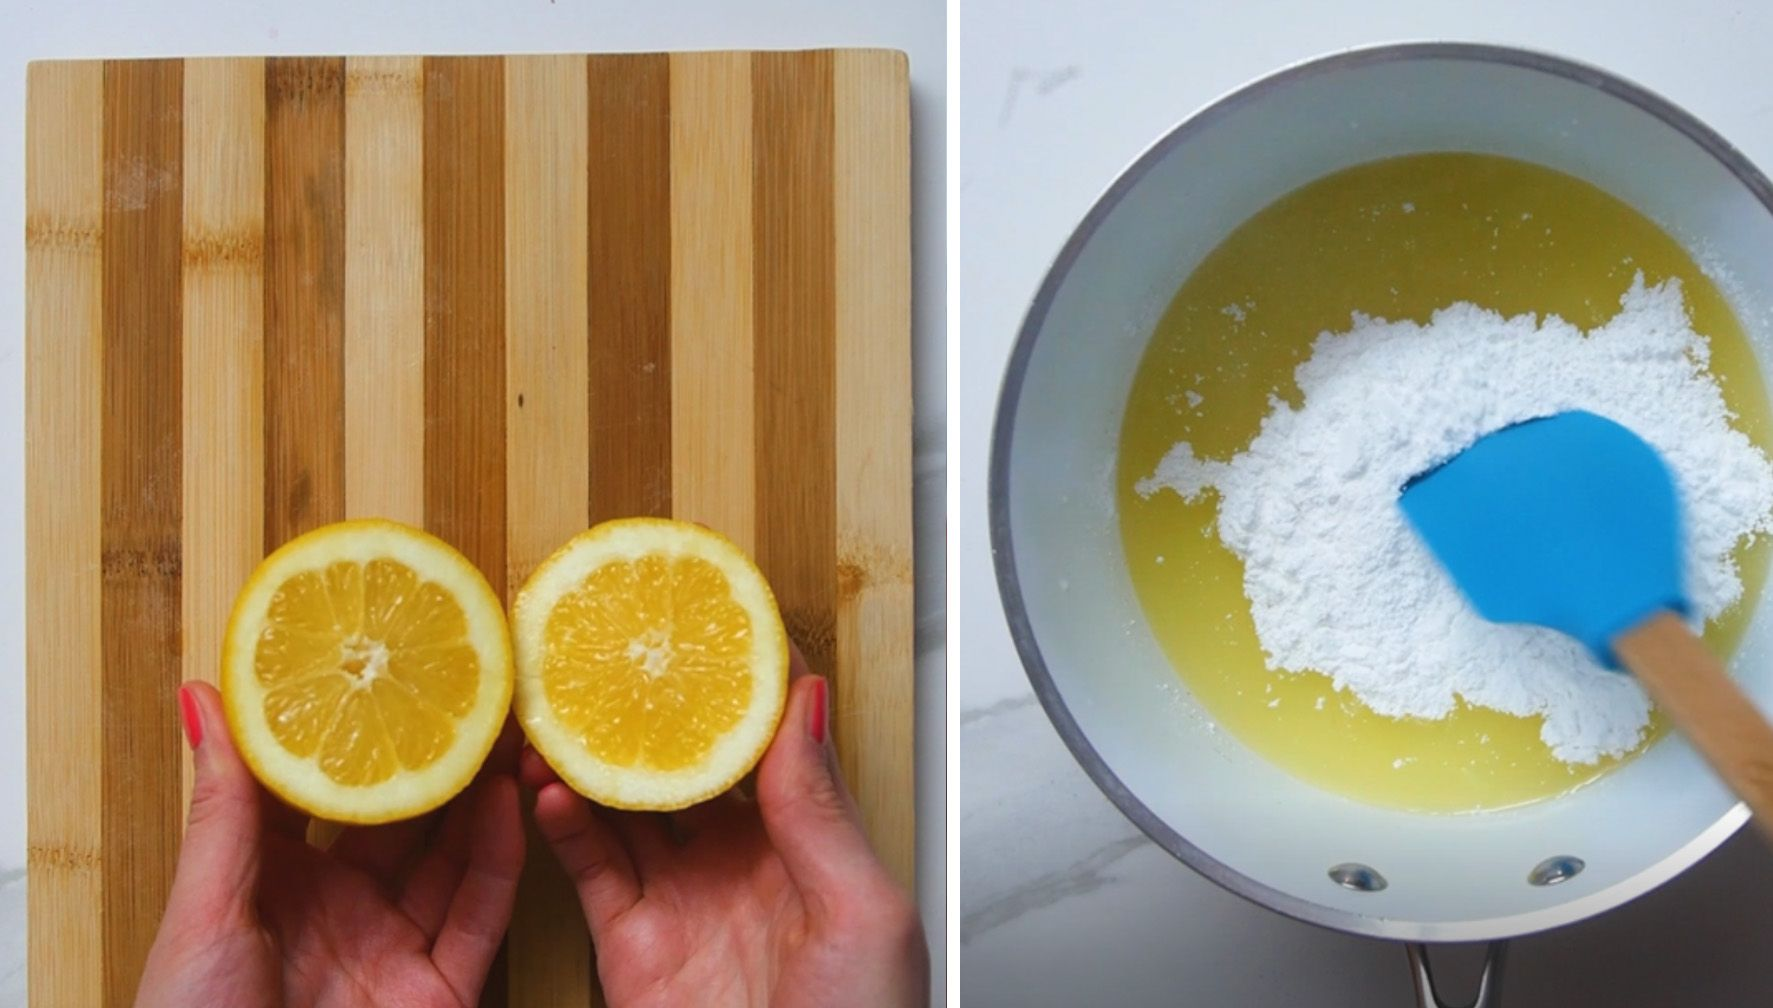 lemon cut in half with magnesium powder in a sauce pan